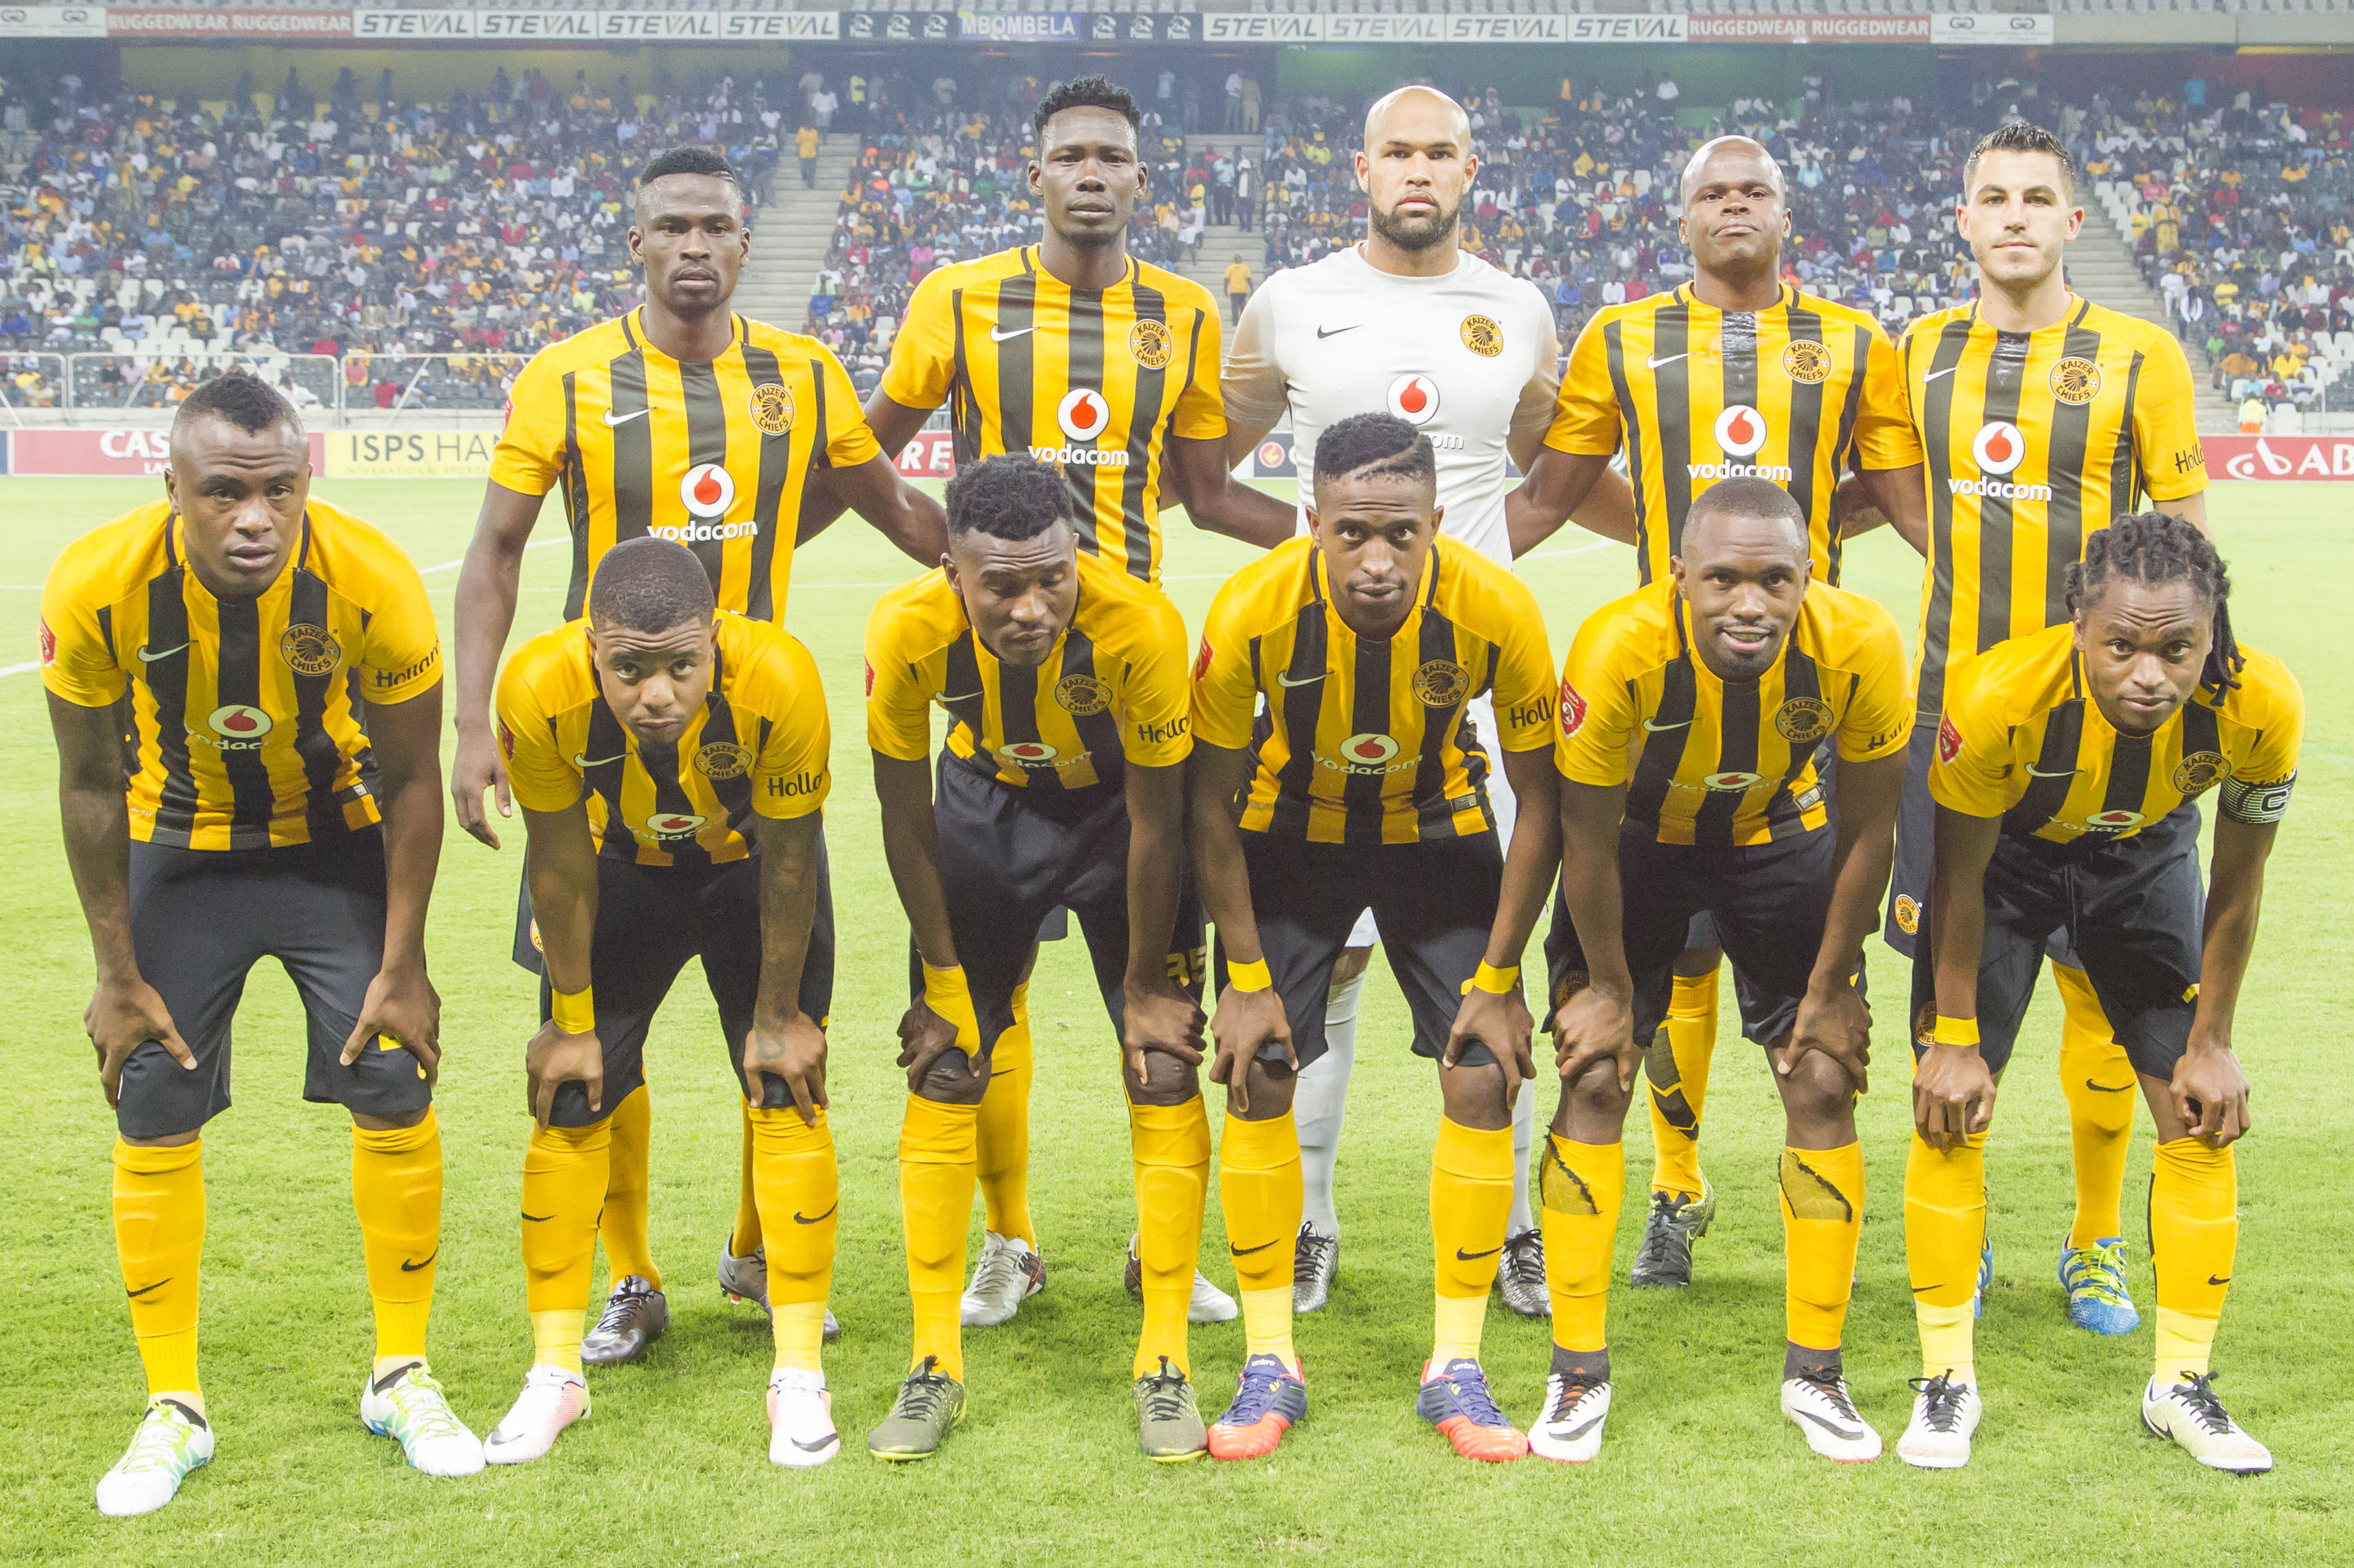 Kaizer Chiefs: Kaizer Chiefs: How Did Amakhosi Let Things Slip Vs. Black